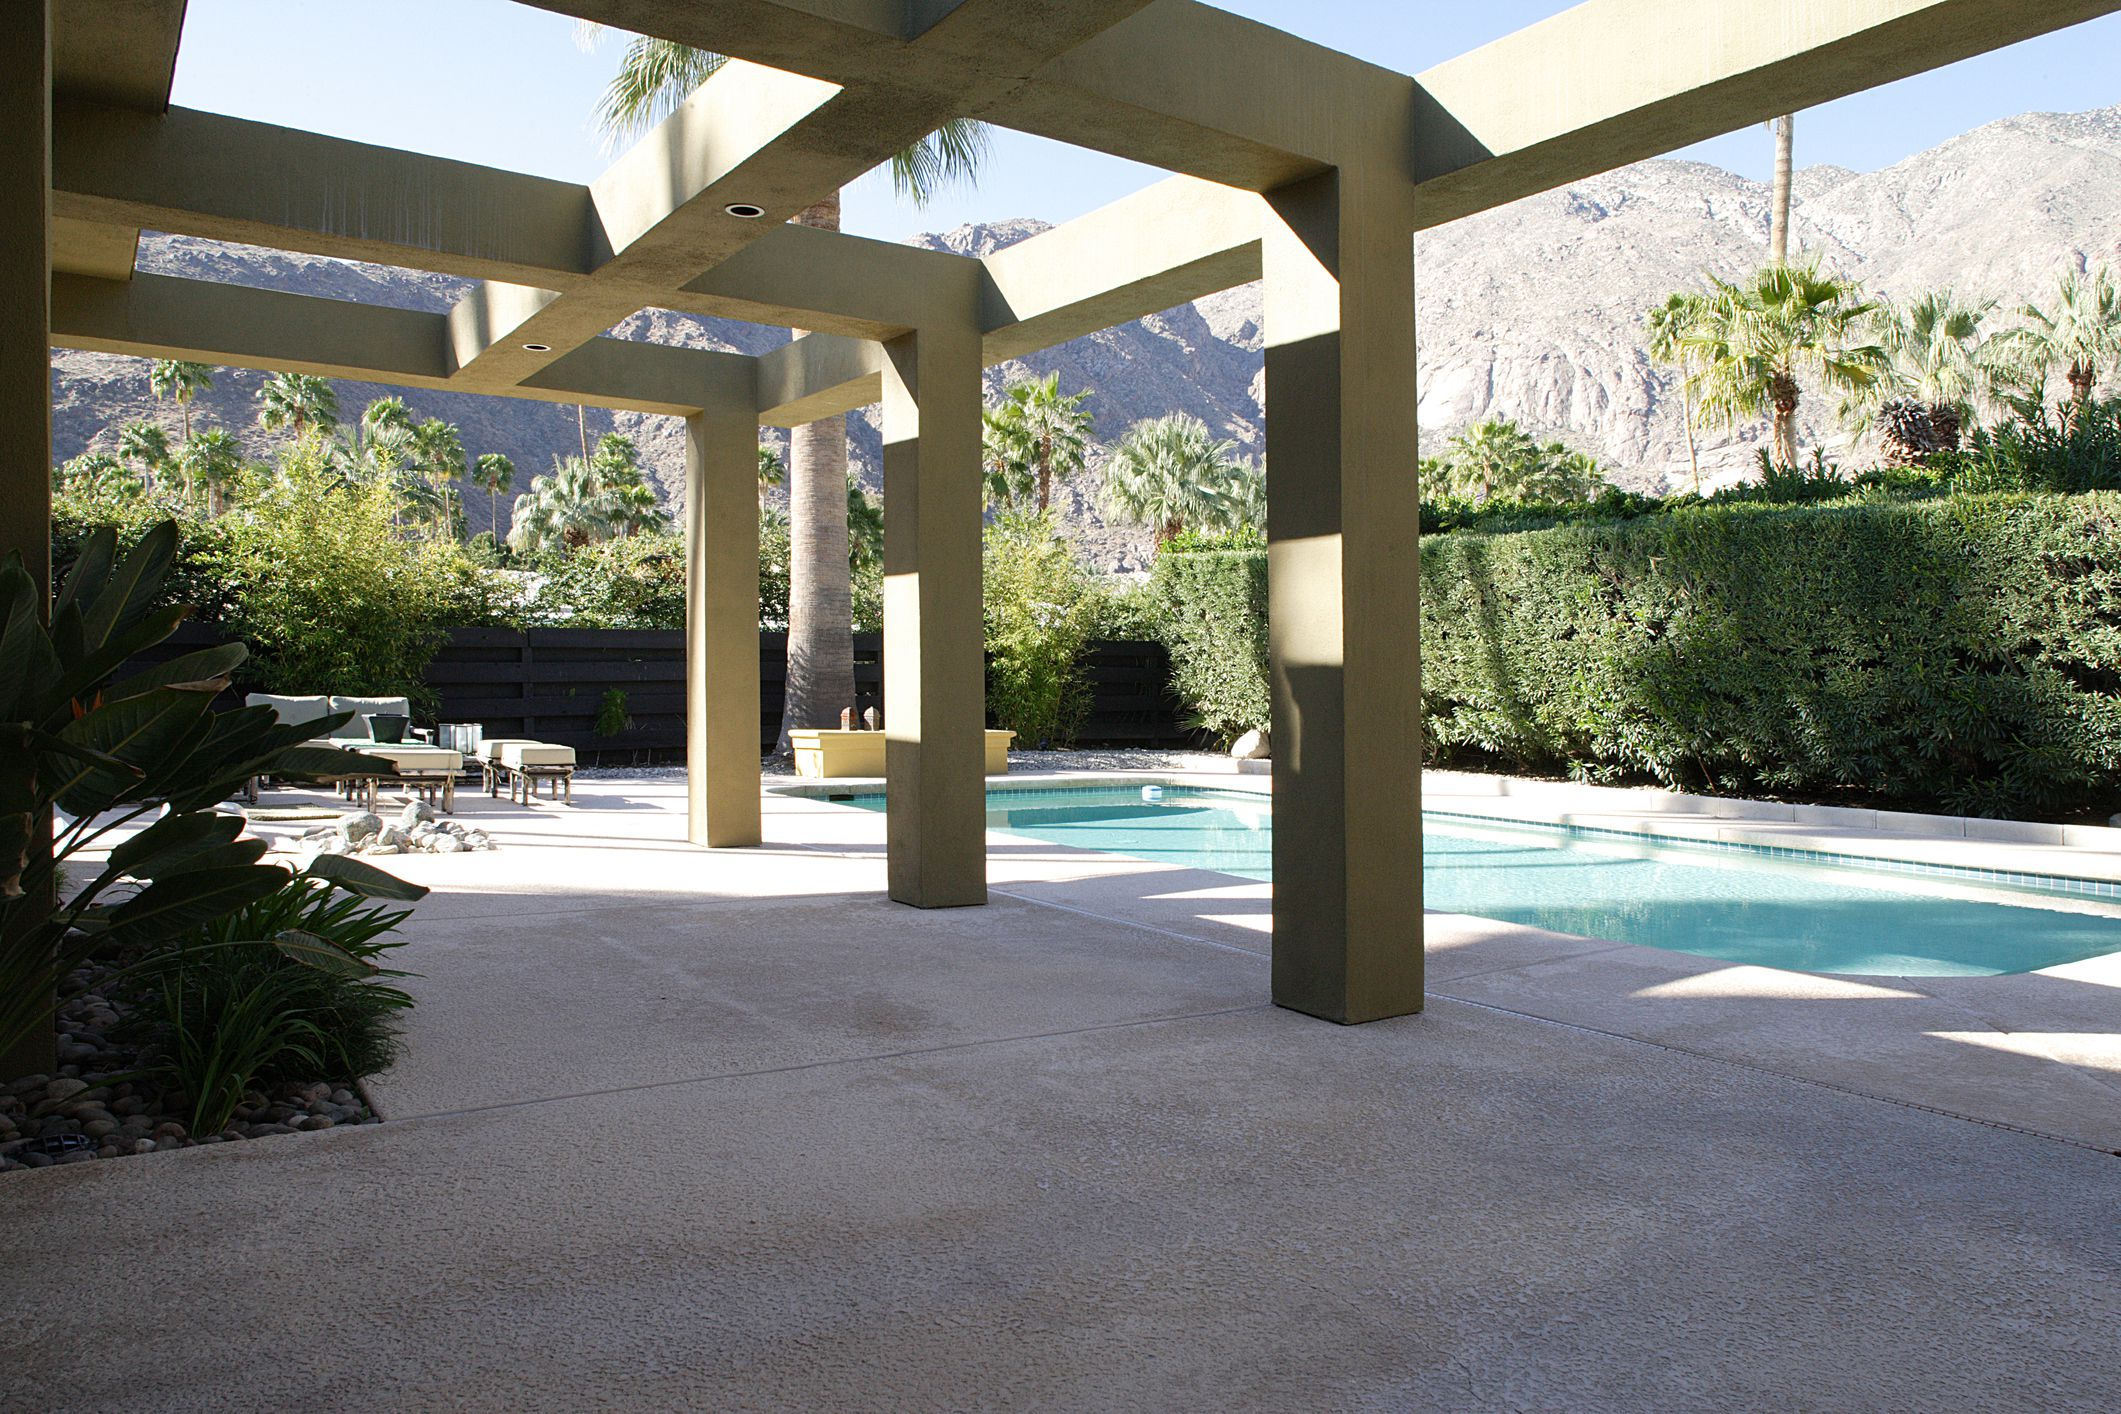 Concrete Patios 12 Great Designs and Ideas